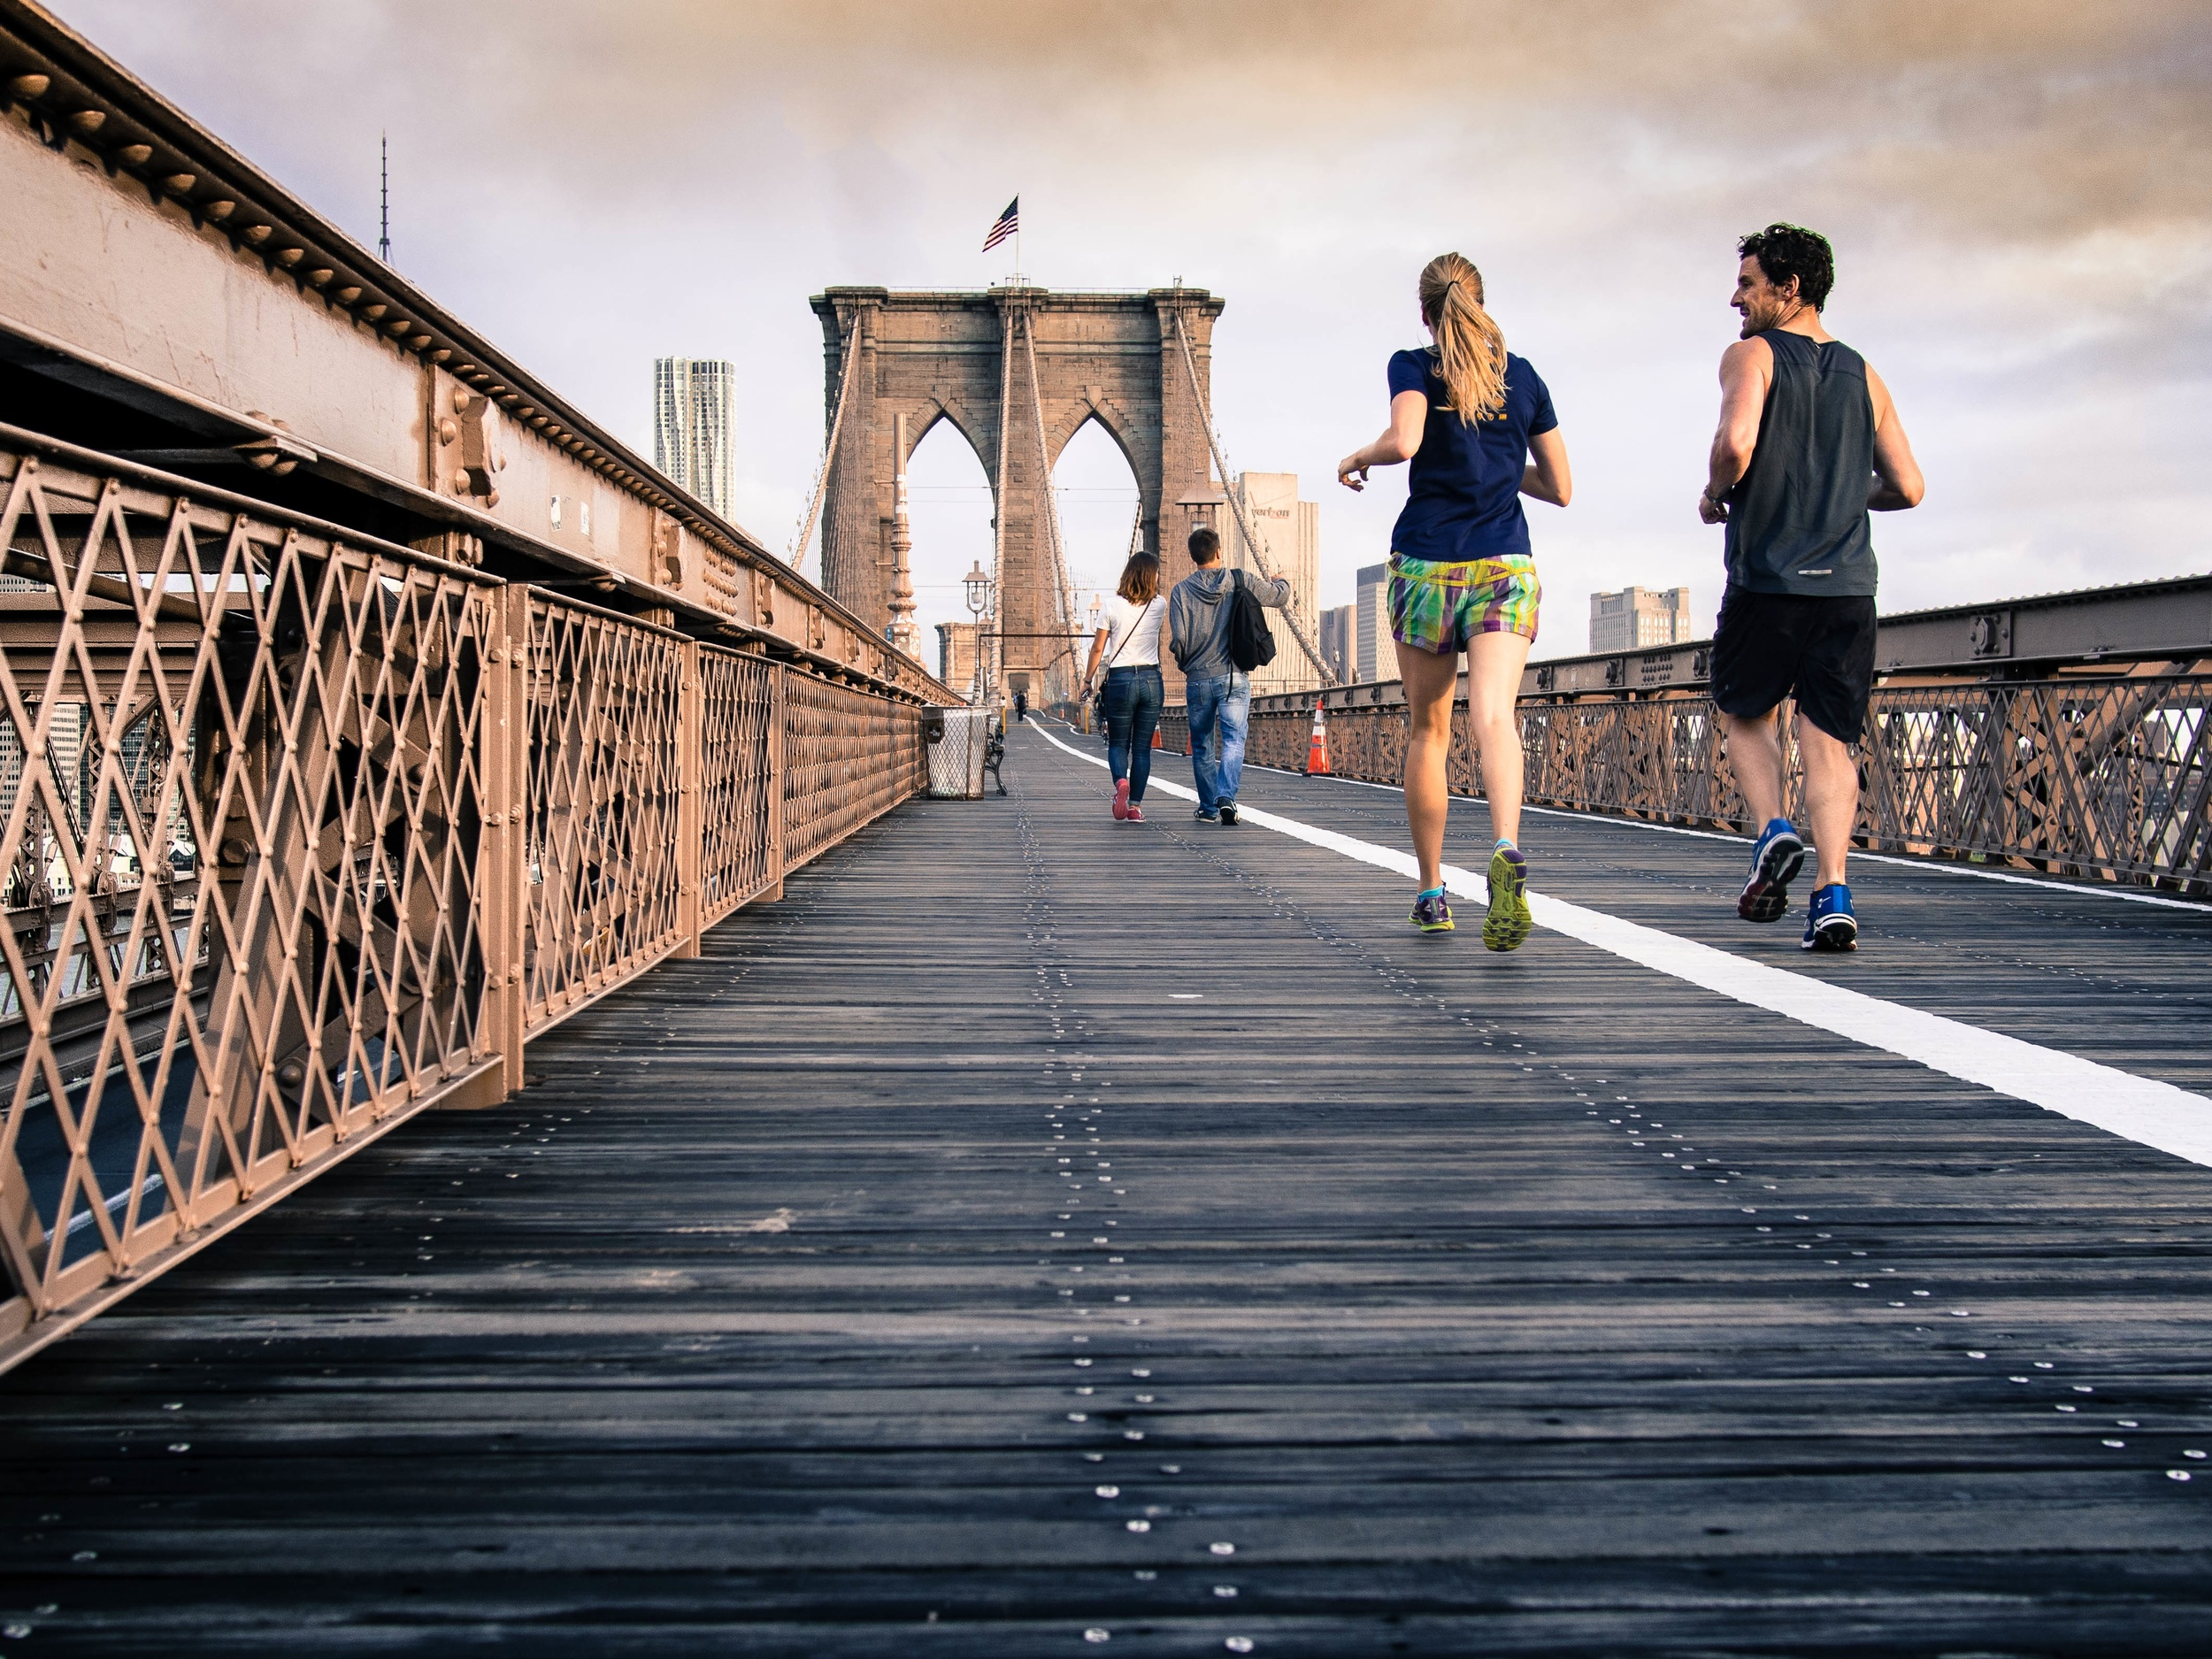 Do you have a New Years resolution to start running? Maybe it's to travel more? SOURCE:unsplash.com